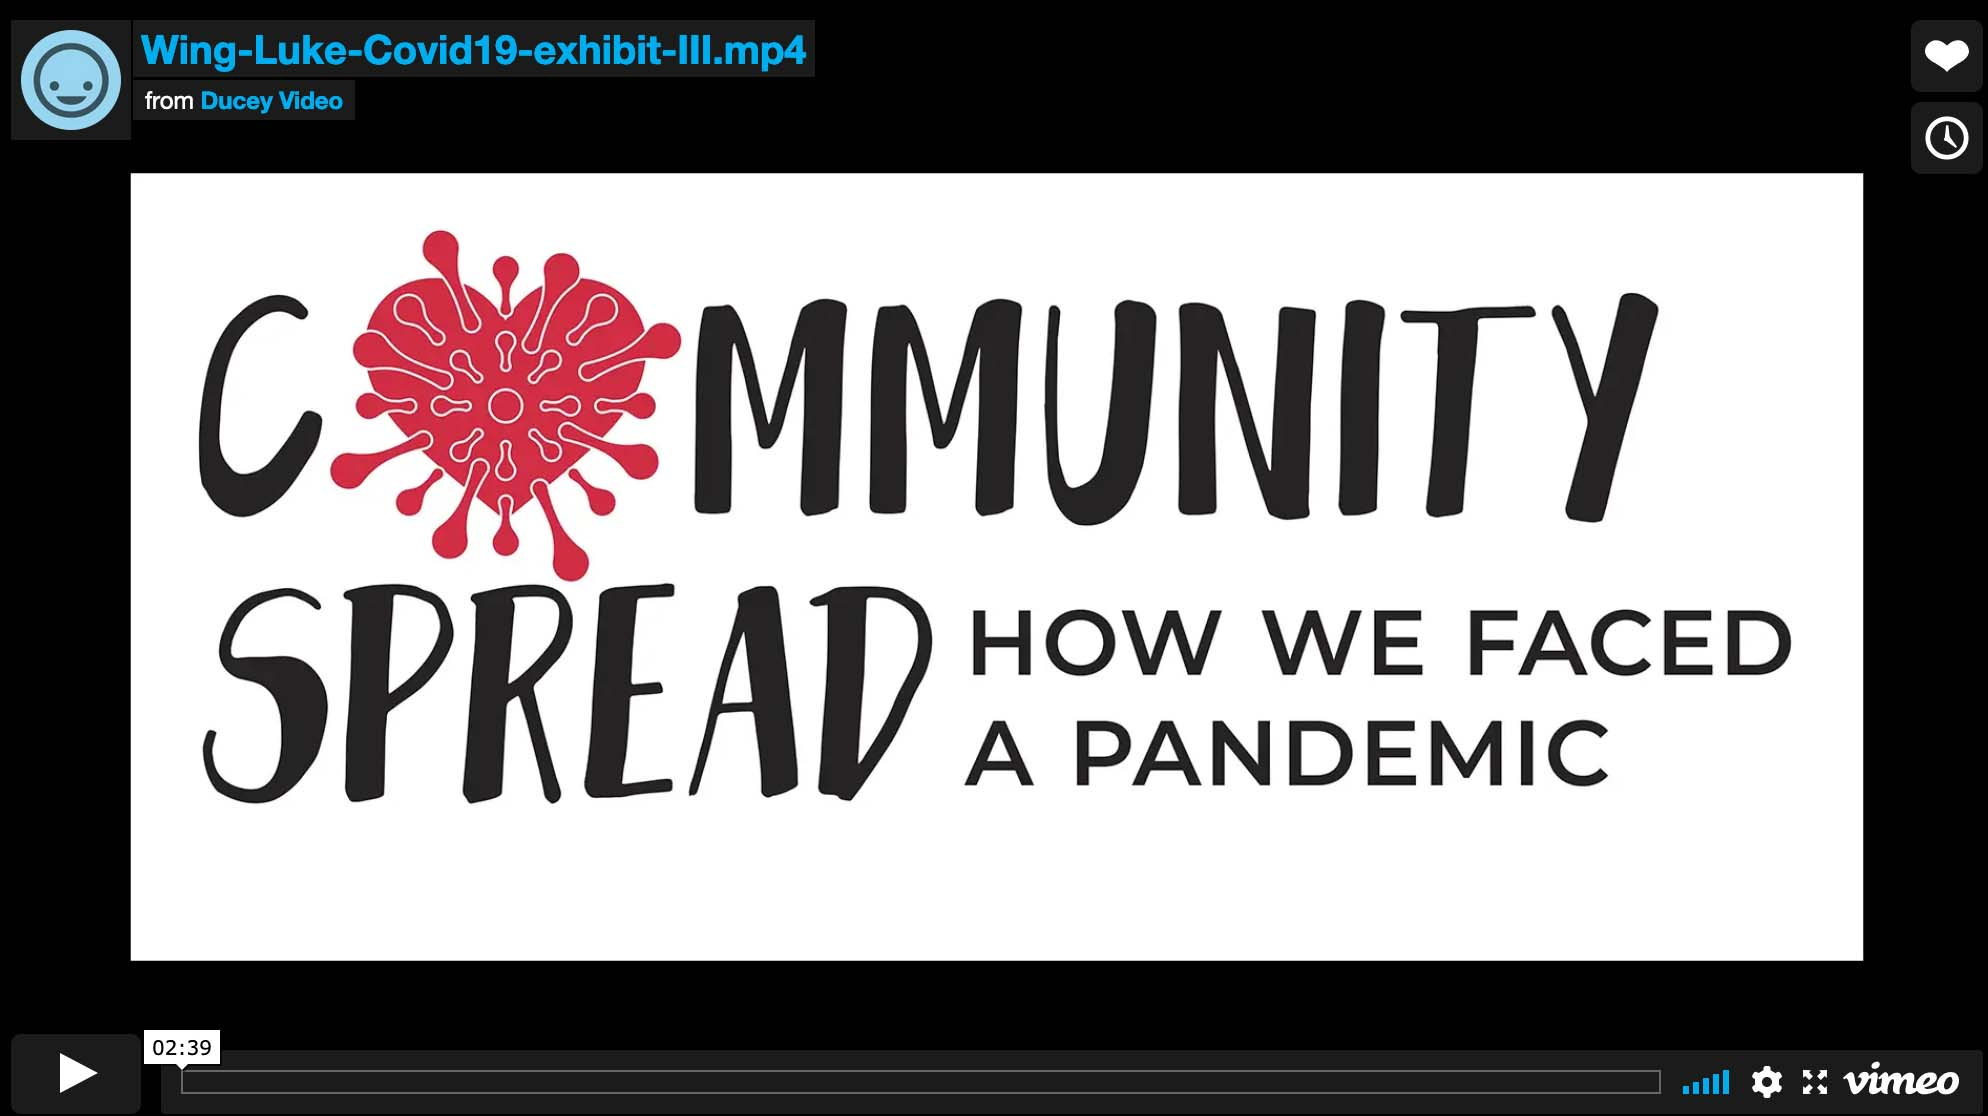 Promo for the Wing Luke Museum of the Asian Pacific American Experience for their exhibit Community Spread: How We Faced a Pandemic. Director, Cinematographer, Video Editor